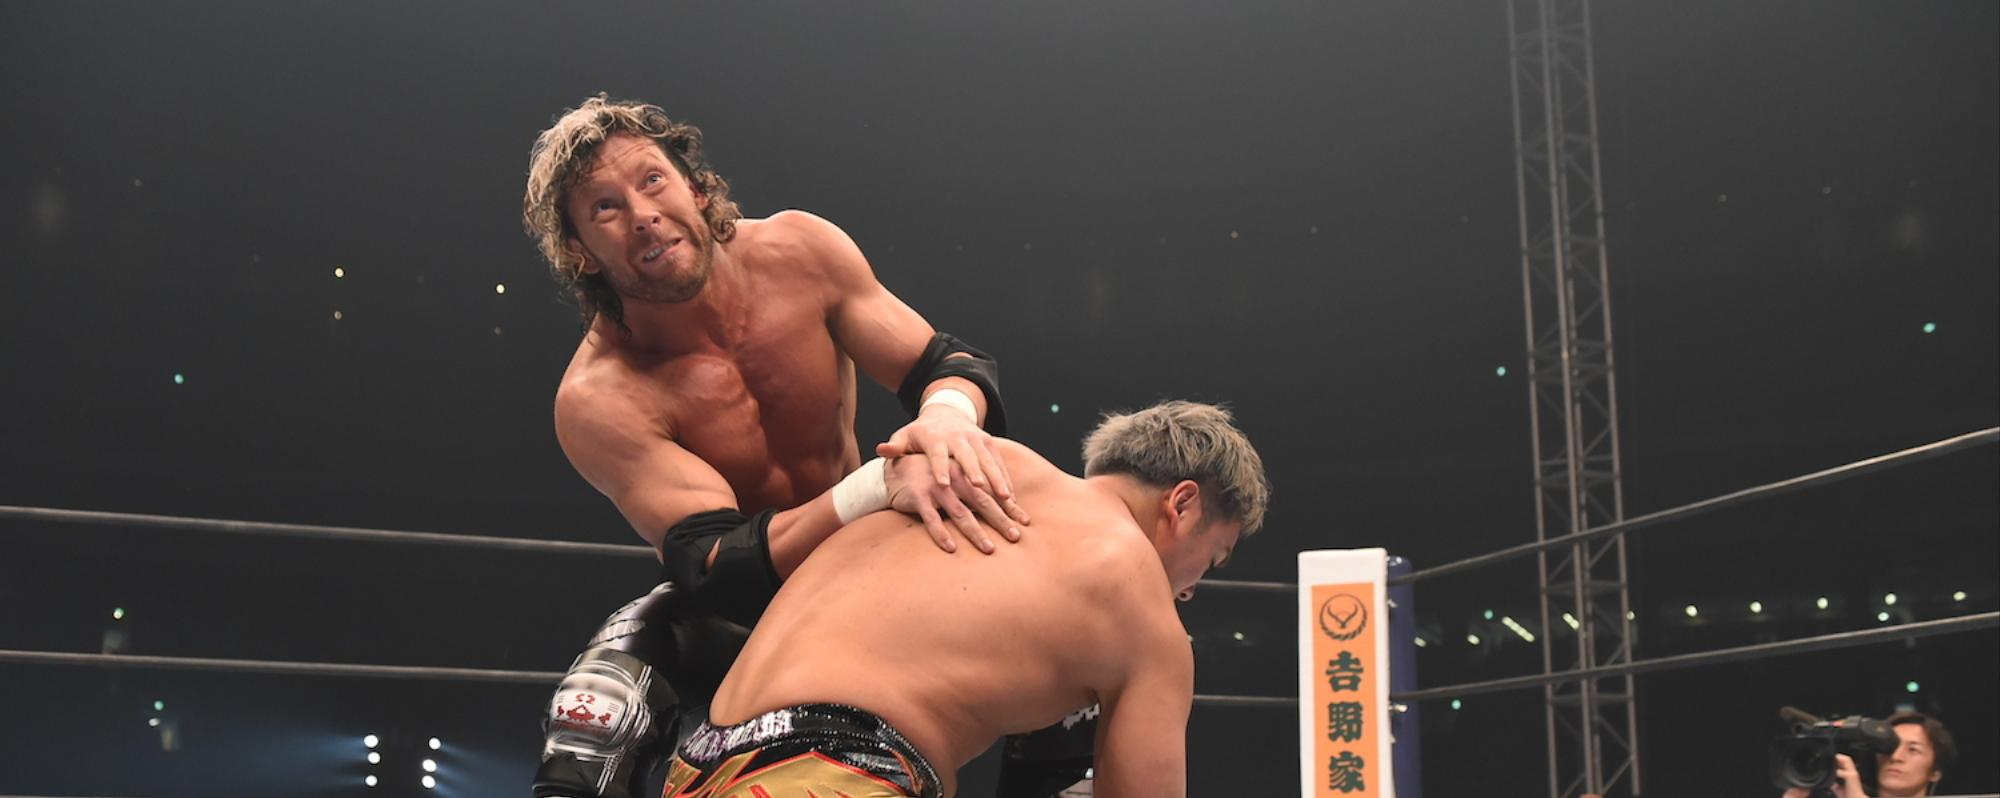 ​Kenny Omega's Journey from Canadian Junior Hockey Goalie to Wrestling Superstar